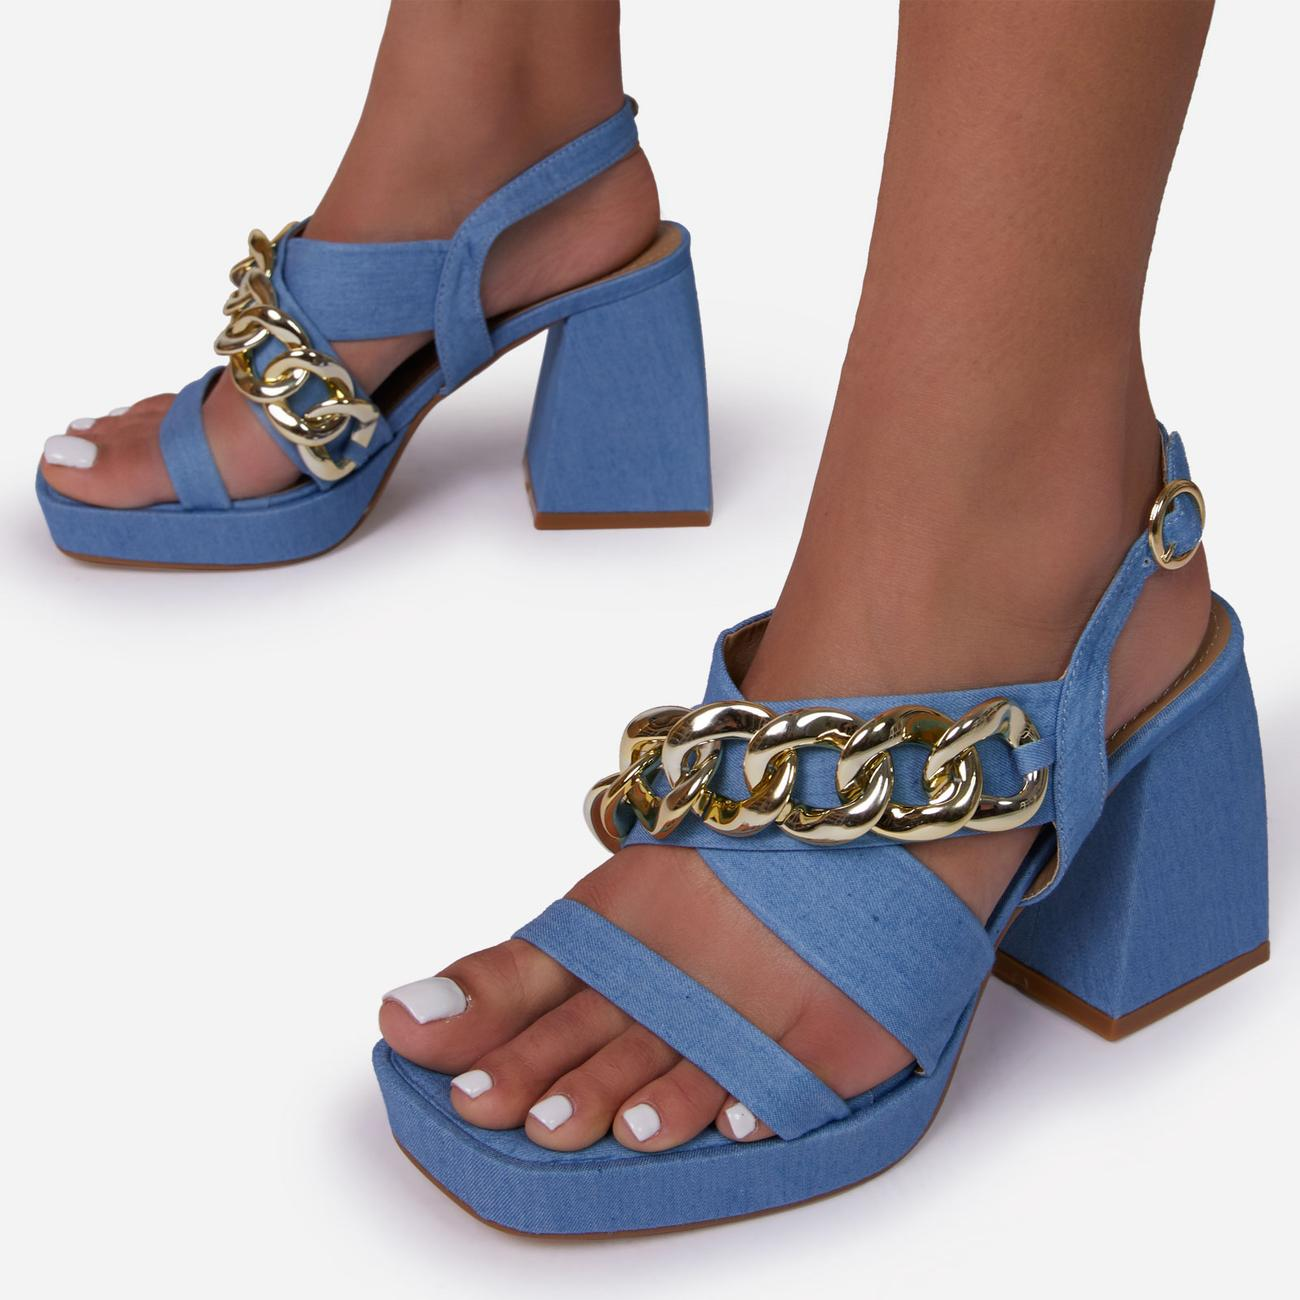 Recharge Wide Fit Chain Detail Platform Flared Block Heel In Blue Denim Image 3